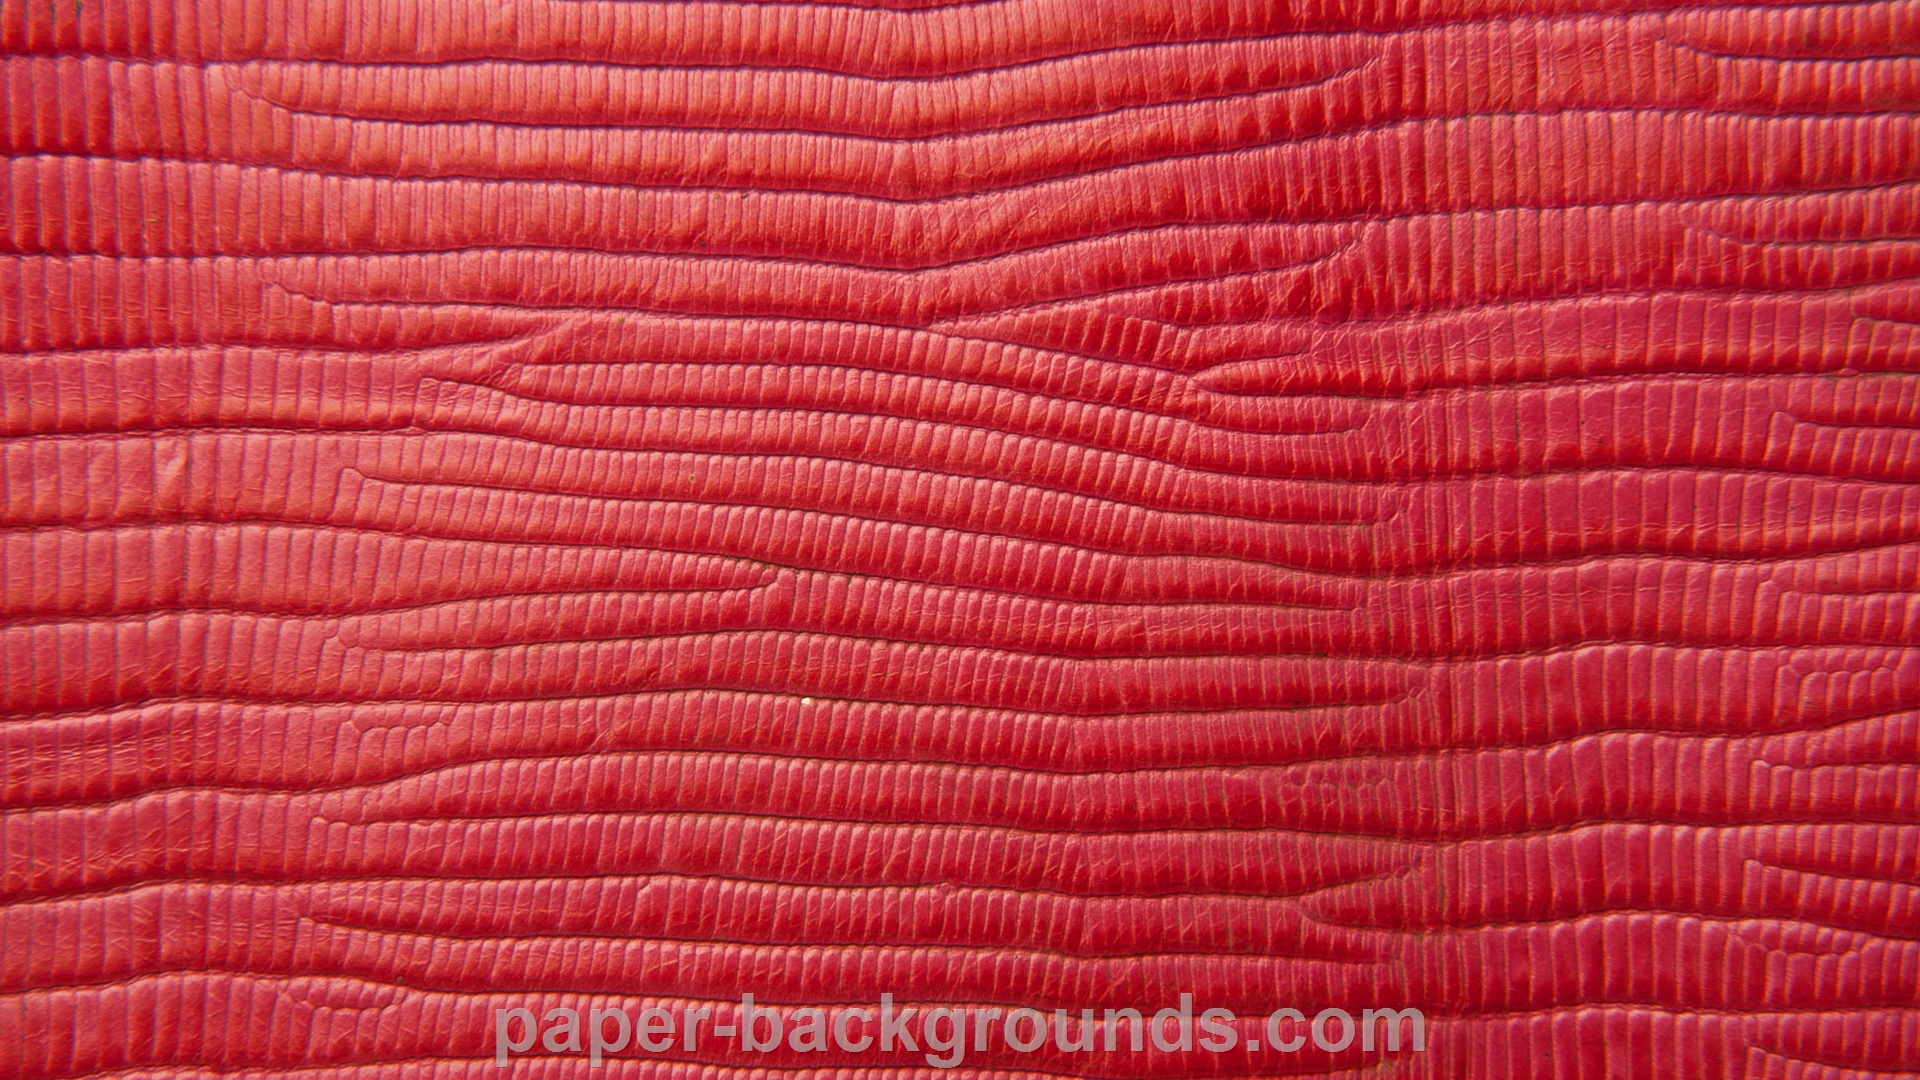 Paper Backgrounds Red Embossed Crocodile Leather Texture Hd